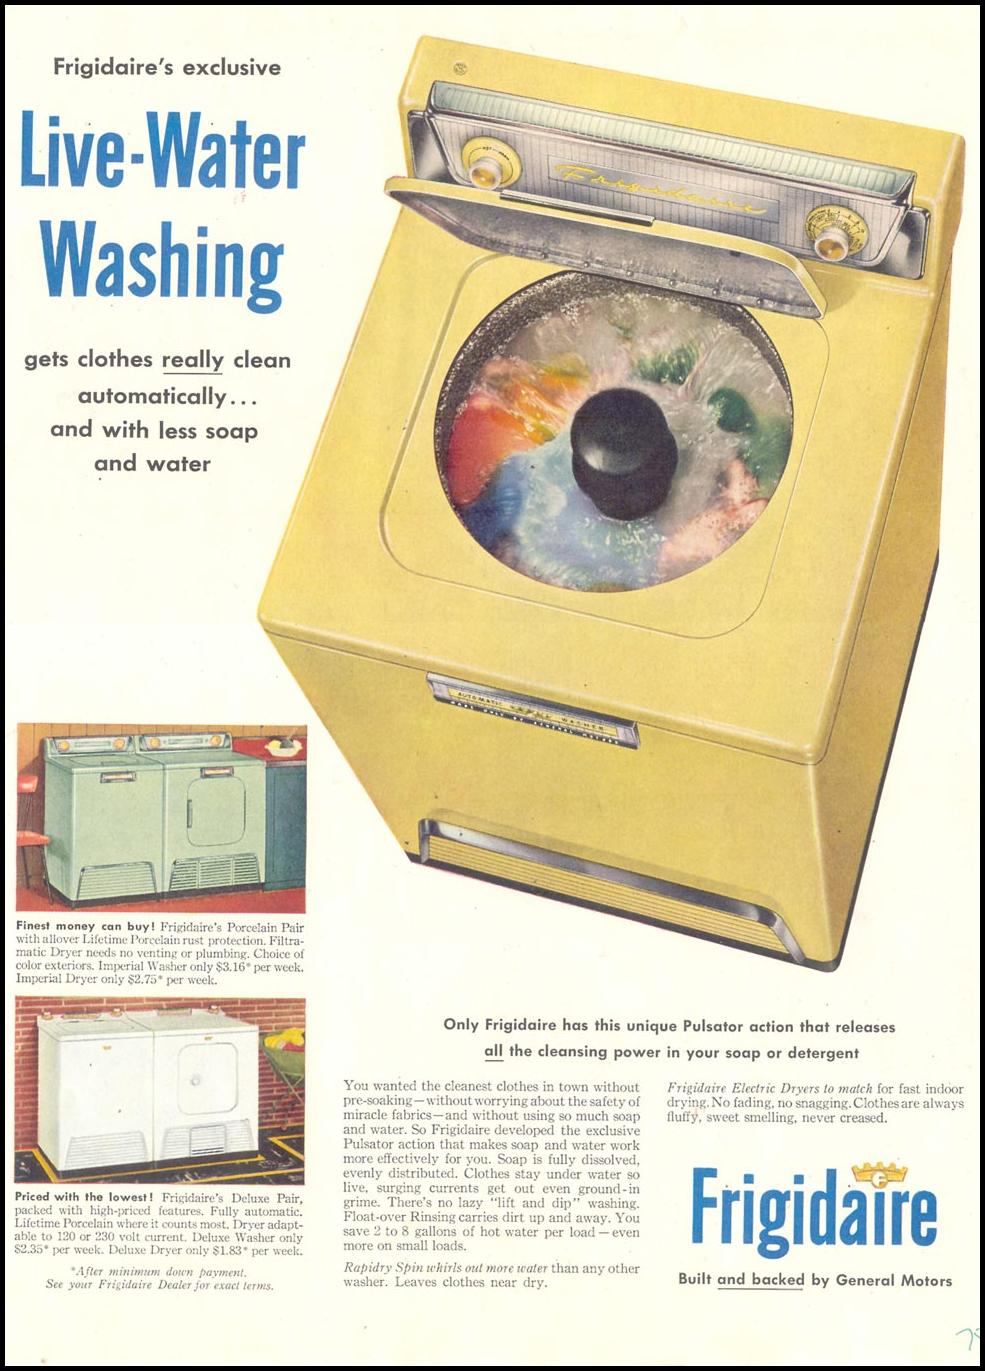 FRIGIDAIRE WASHING MACHINES SATURDAY EVENING POST 03/26/1955 p. 75